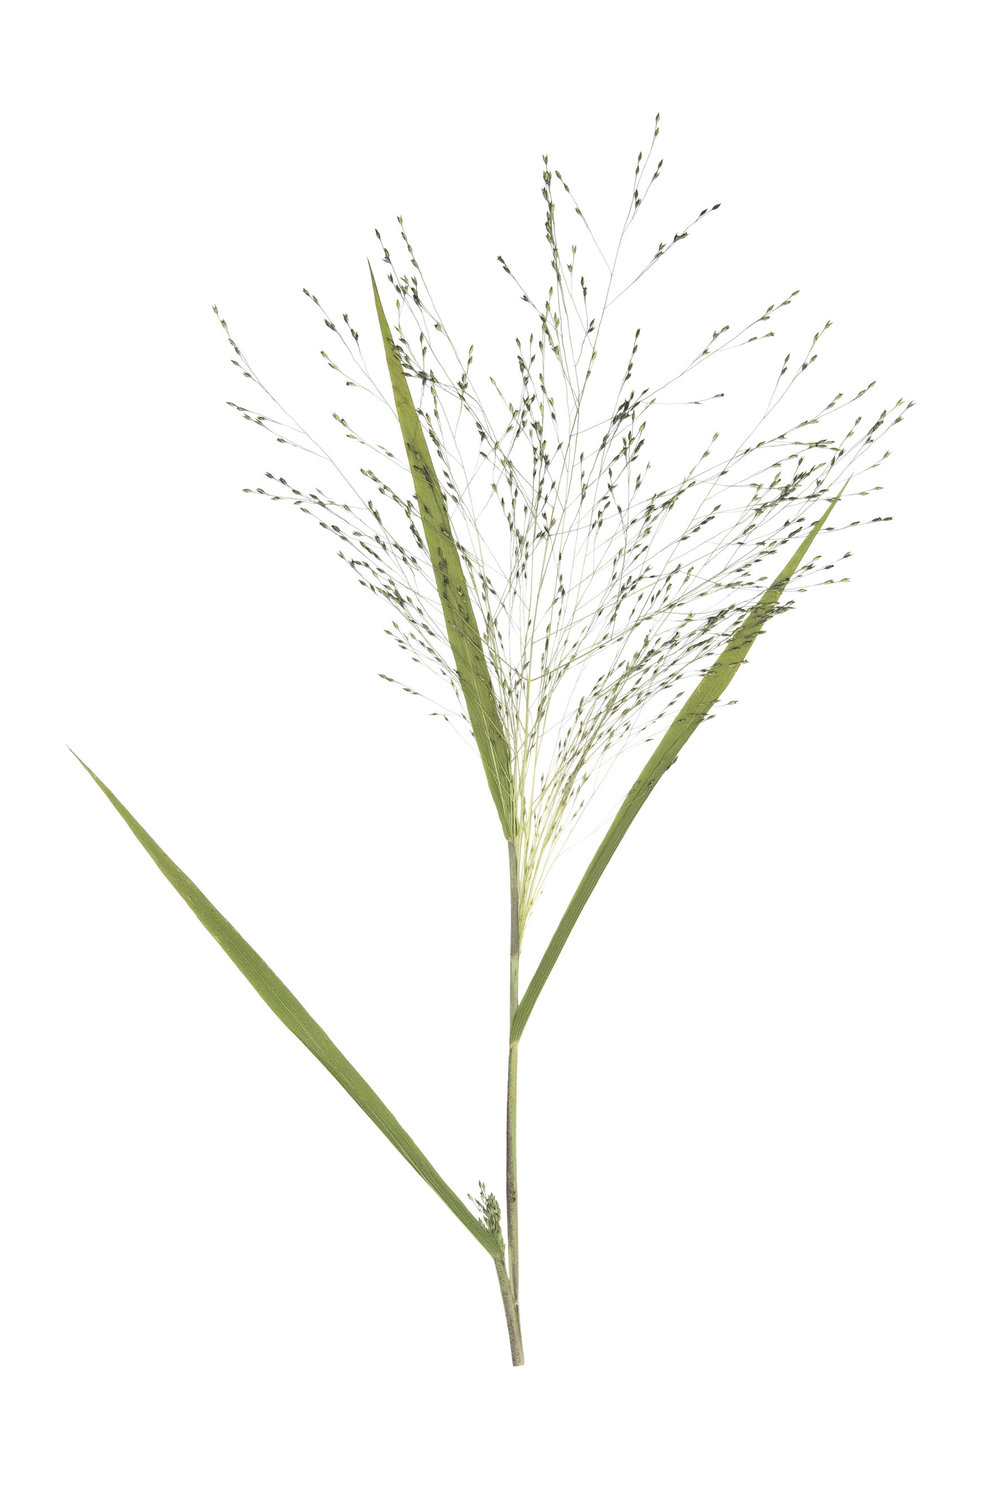 New! Panicum capillare / Witchgrass